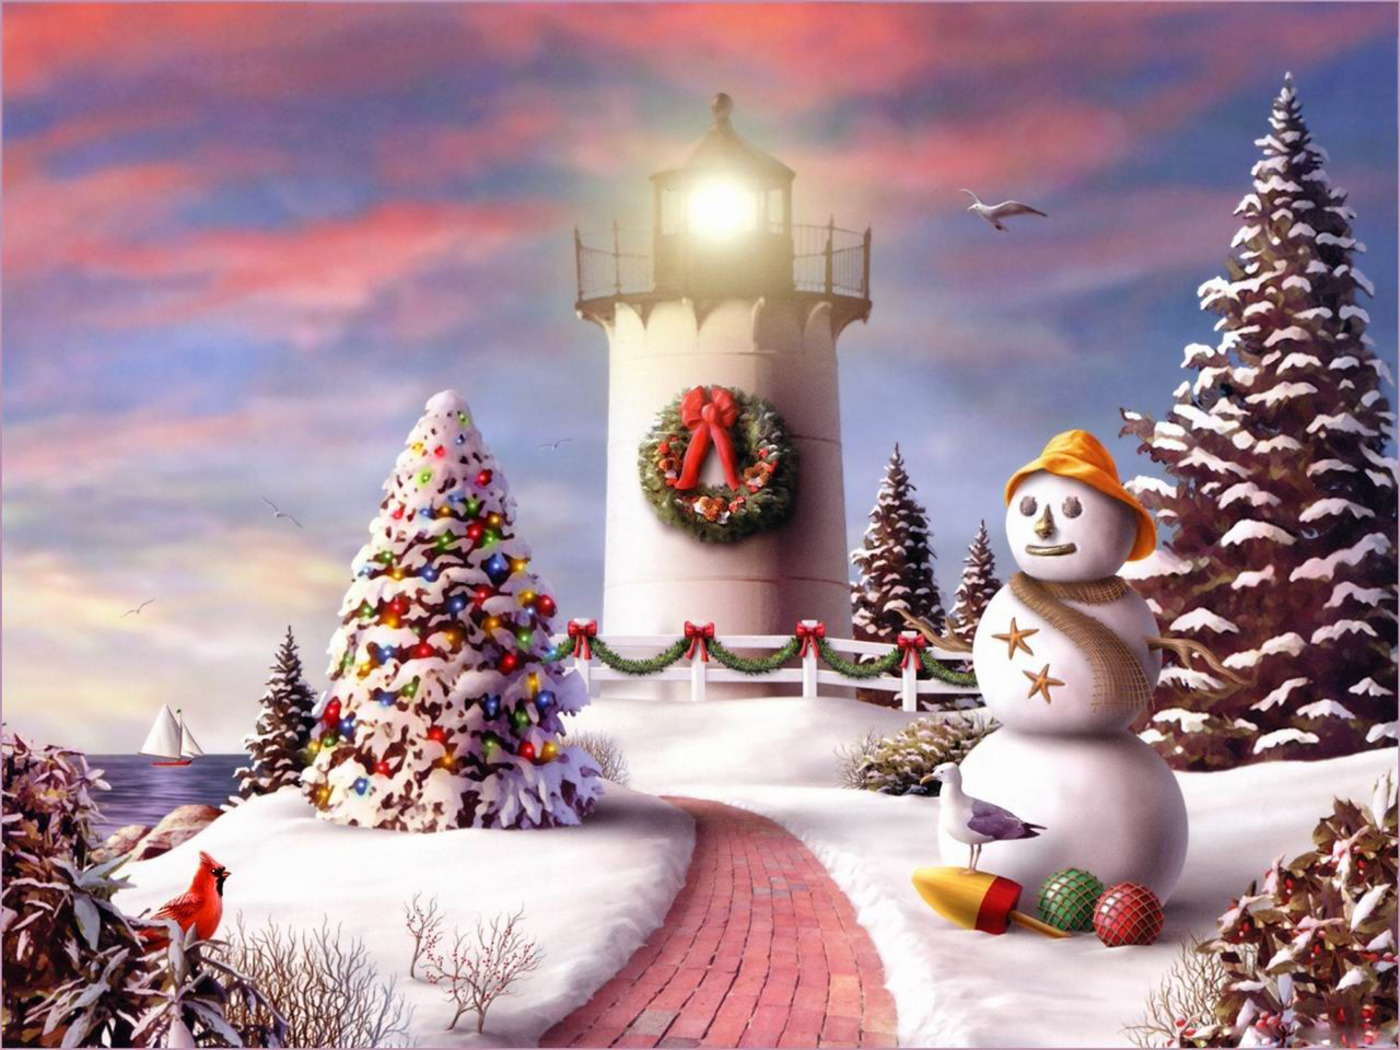 Download Desktop wallpaper 2010 Christmas Wallpapers 1400x1050